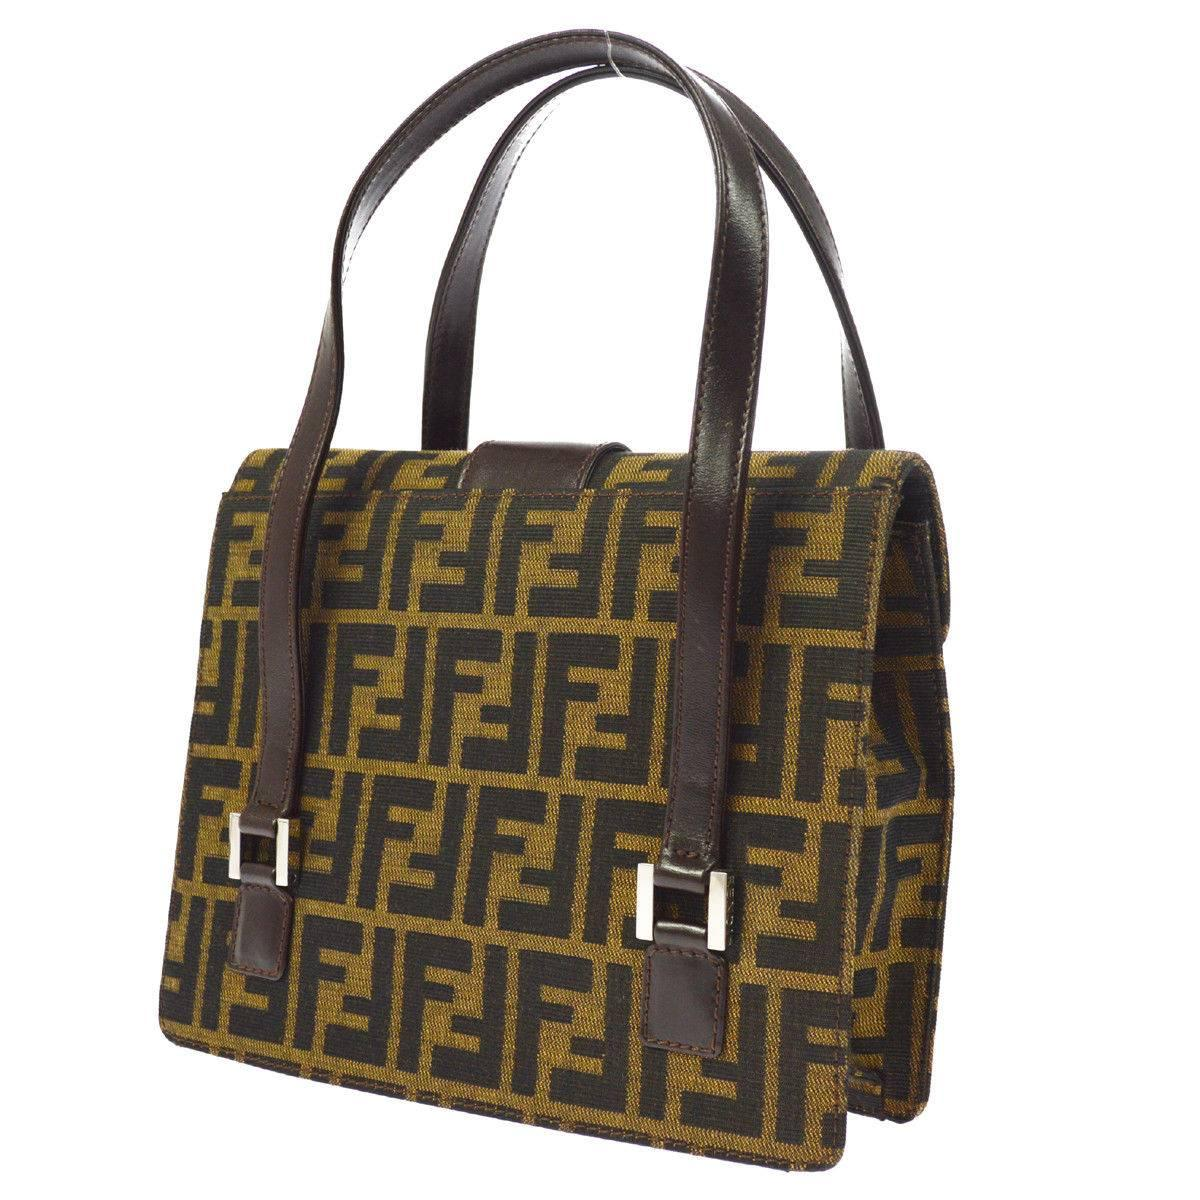 Fendi Monogram Canvas Logo Leather Buckle Kelly Style Top Handle Satchel Bag